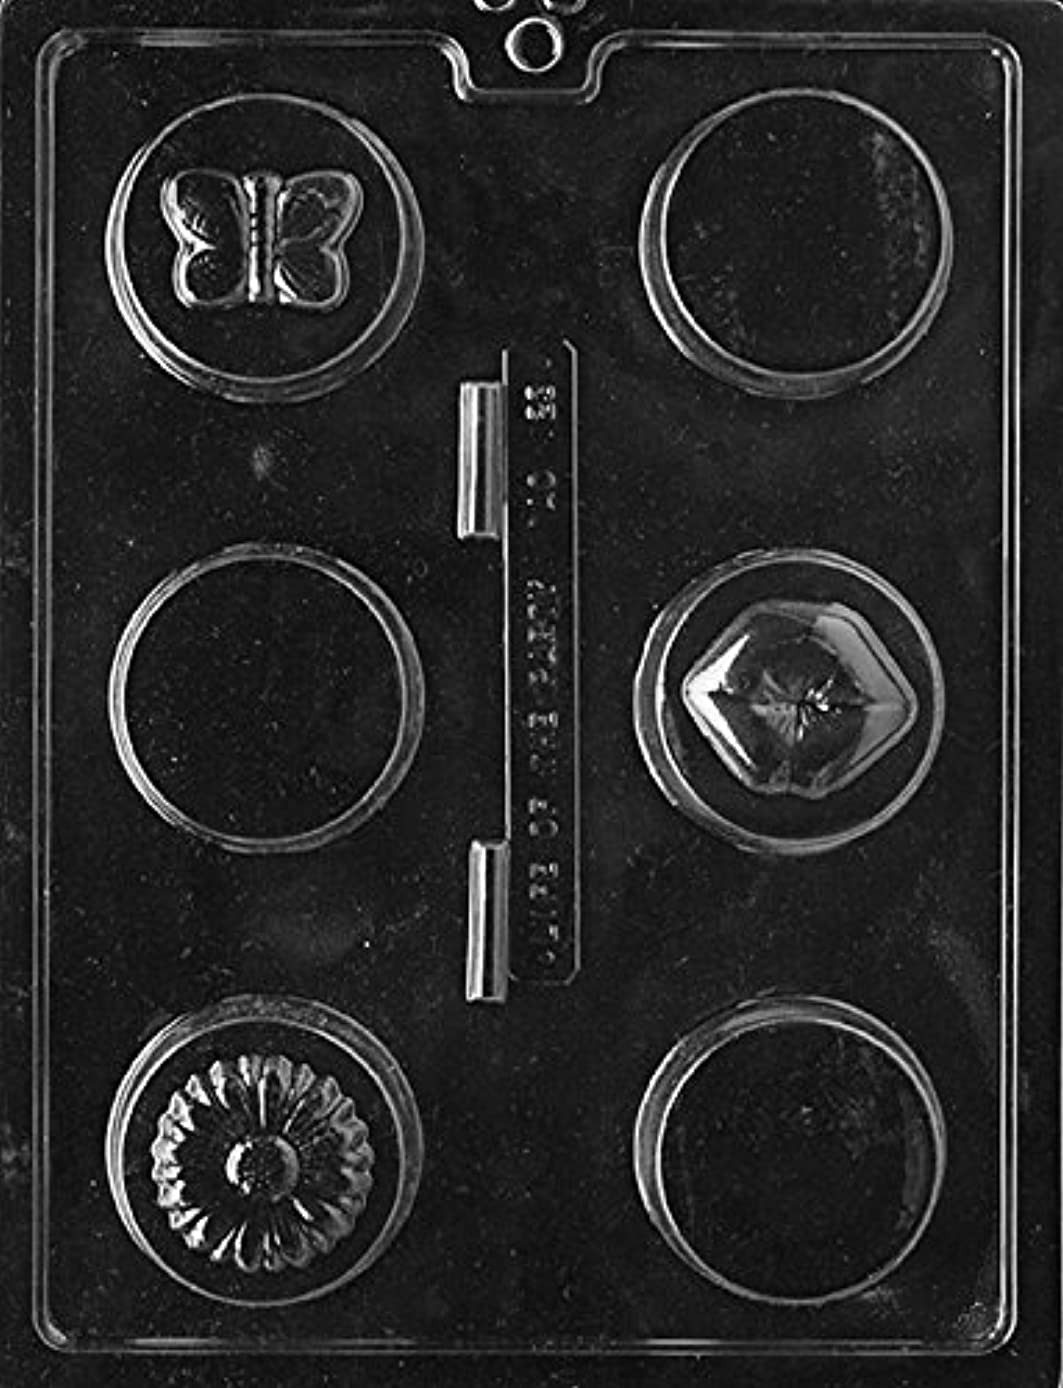 CybrTrayd AO123 Designer Cookies All Occasions Soap Mold with Exclusive Cybrtrayd Copyrighted Soap Molding Instructions